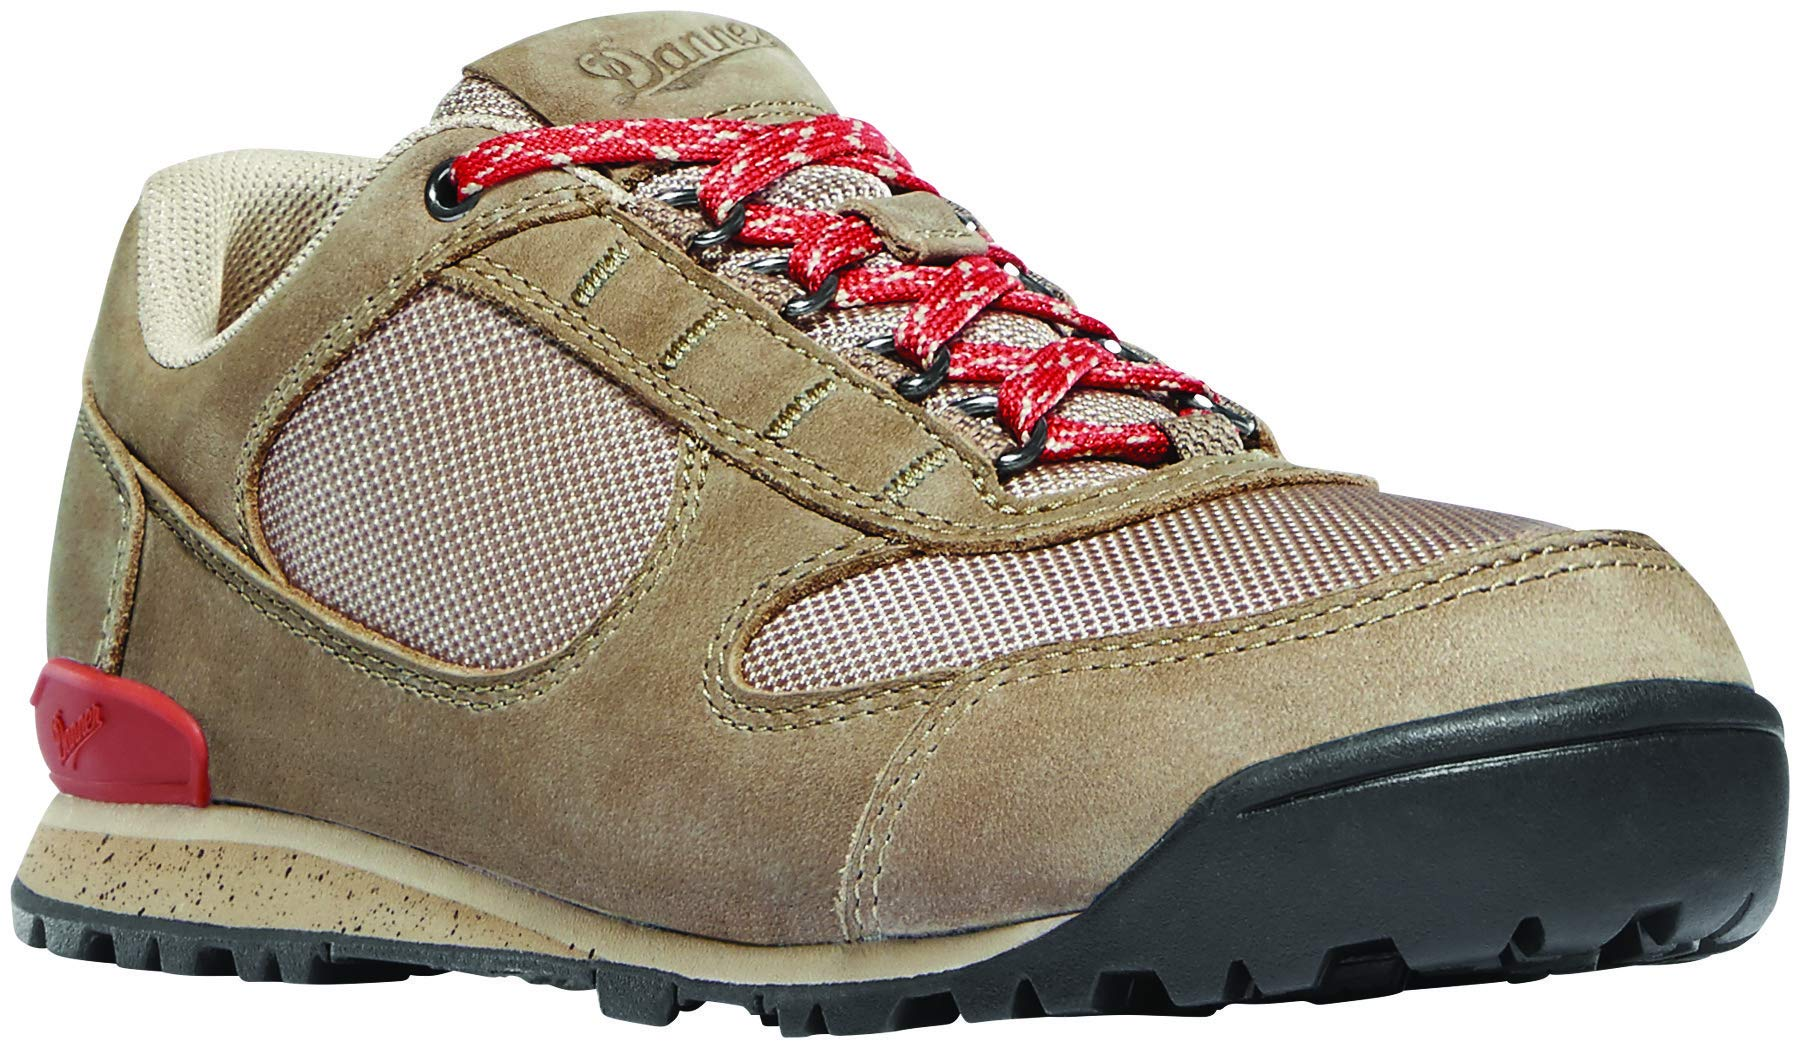 Danner Women's 37398 Jag Low 3'' Hiking Shoe, Timber Wolf/Hot Sauce - 5.5 M by Danner